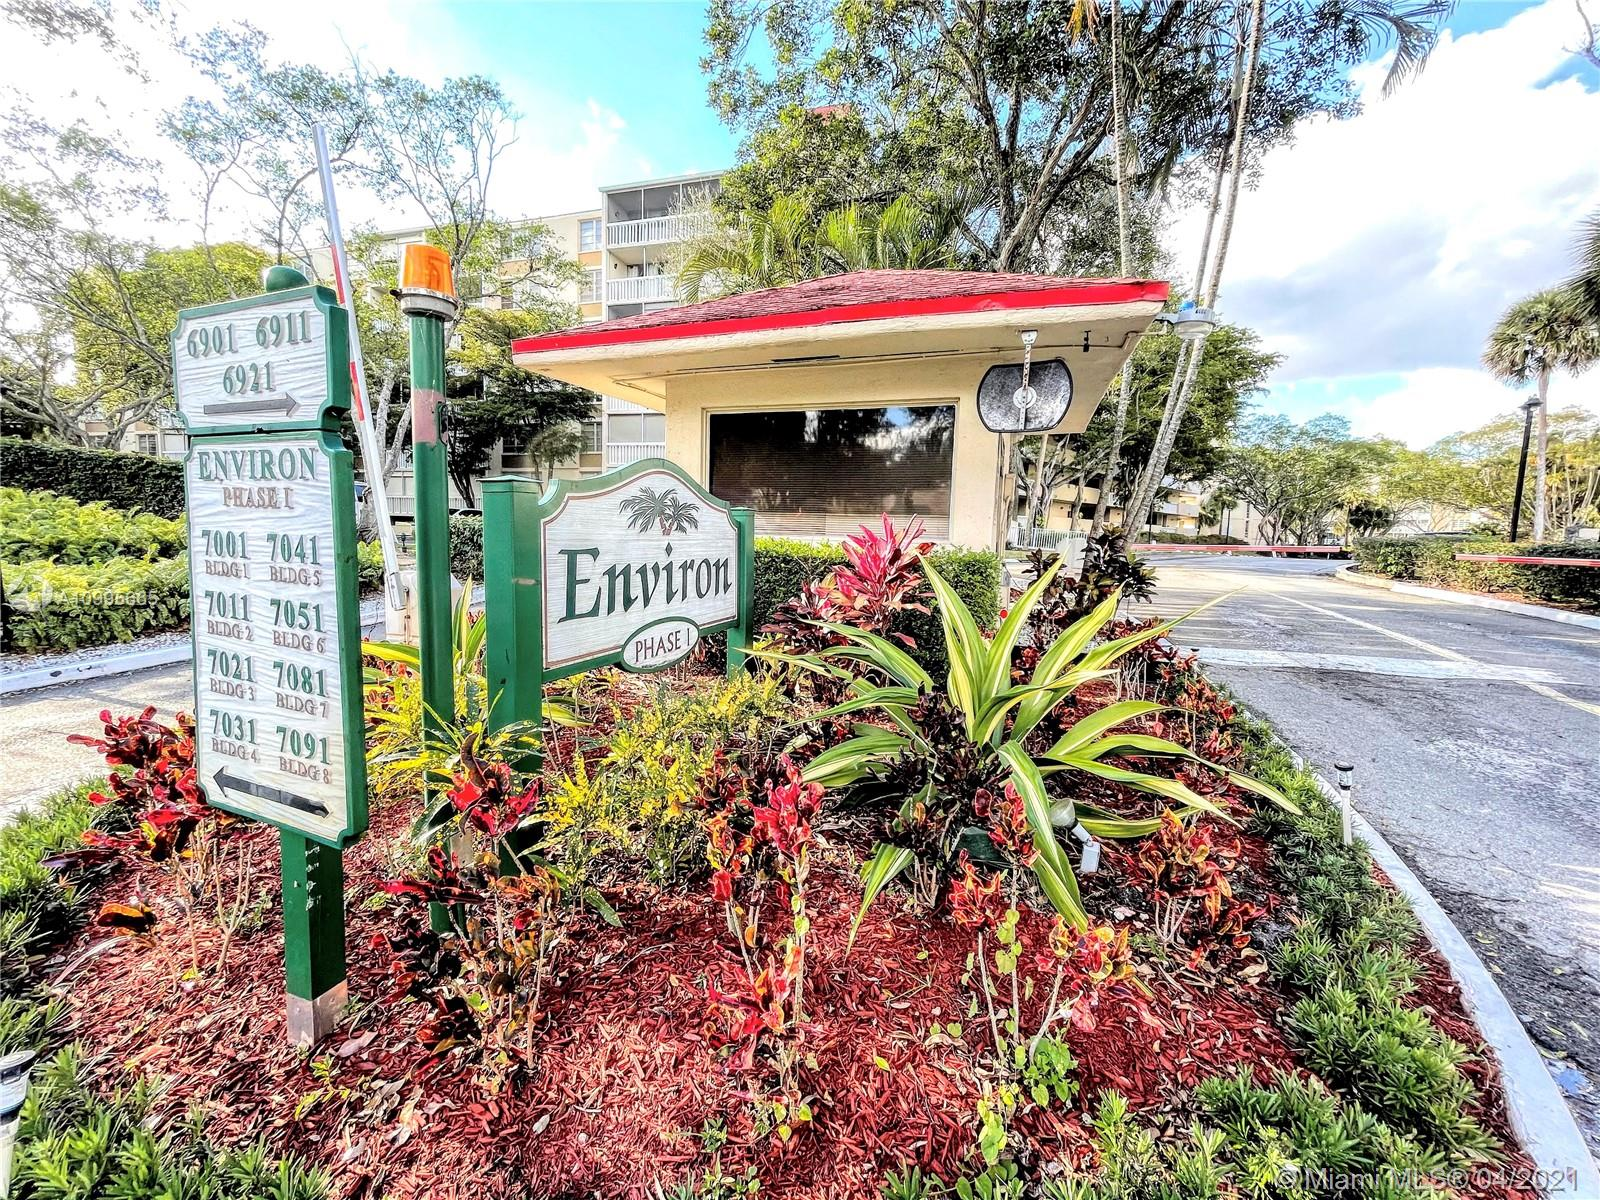 Renovated unit ready for you to view. This is a turn key property and a wonderful community. Environ has many amenities, 24/7 security, private parking, pool, billiards you name it. Make your appointment to view today you will not regret it.